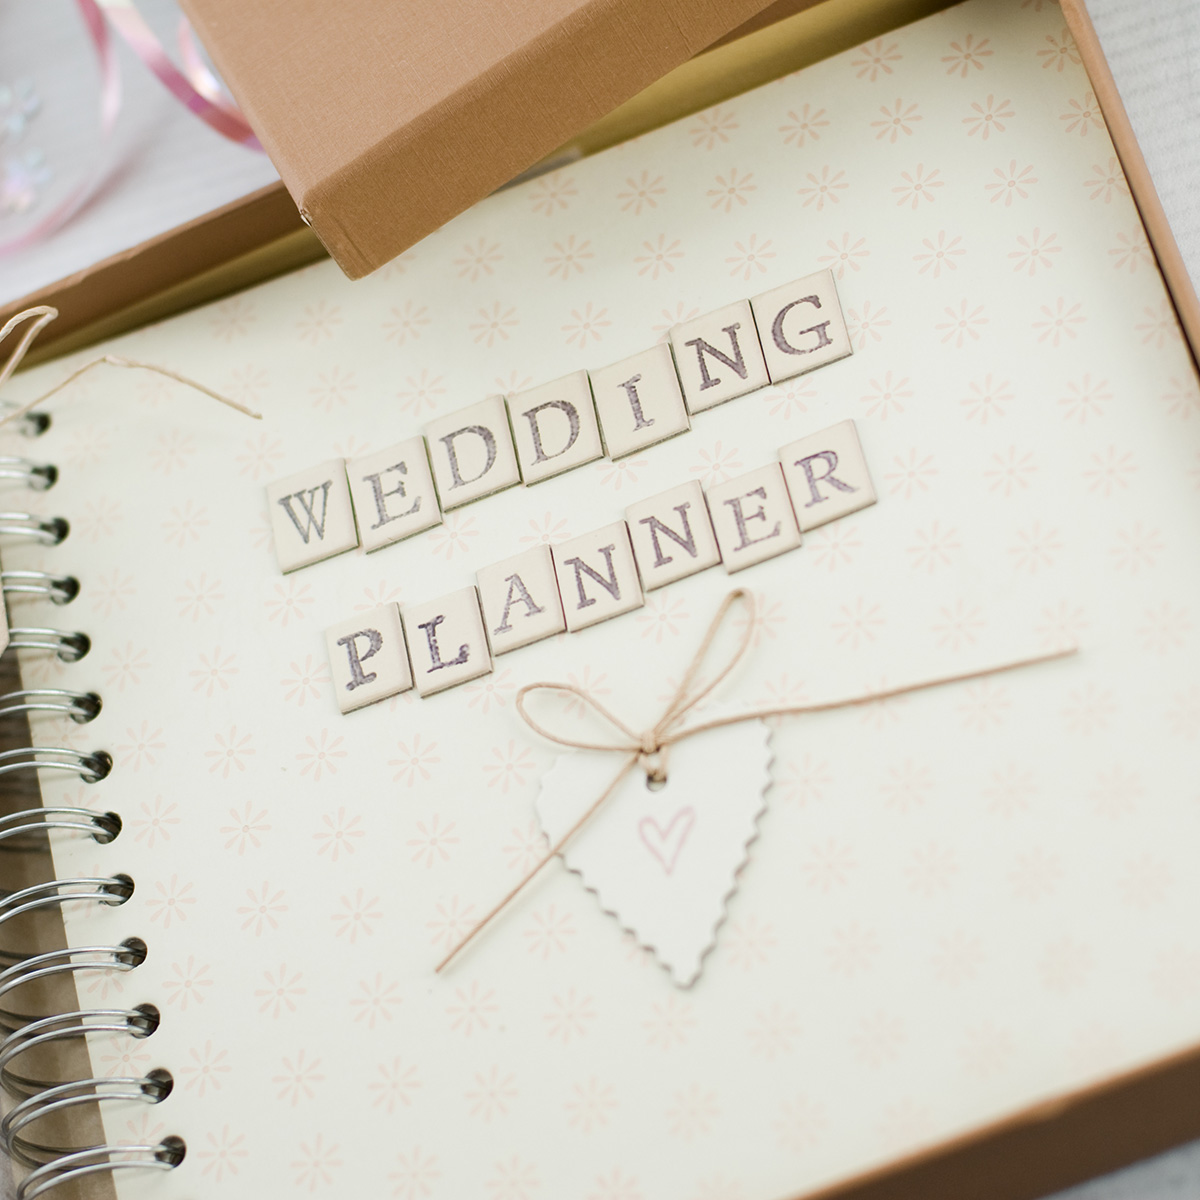 Gift Ideas For Wedding Planner: Wedding Planner Pocket Book :: Wedding Gifts From